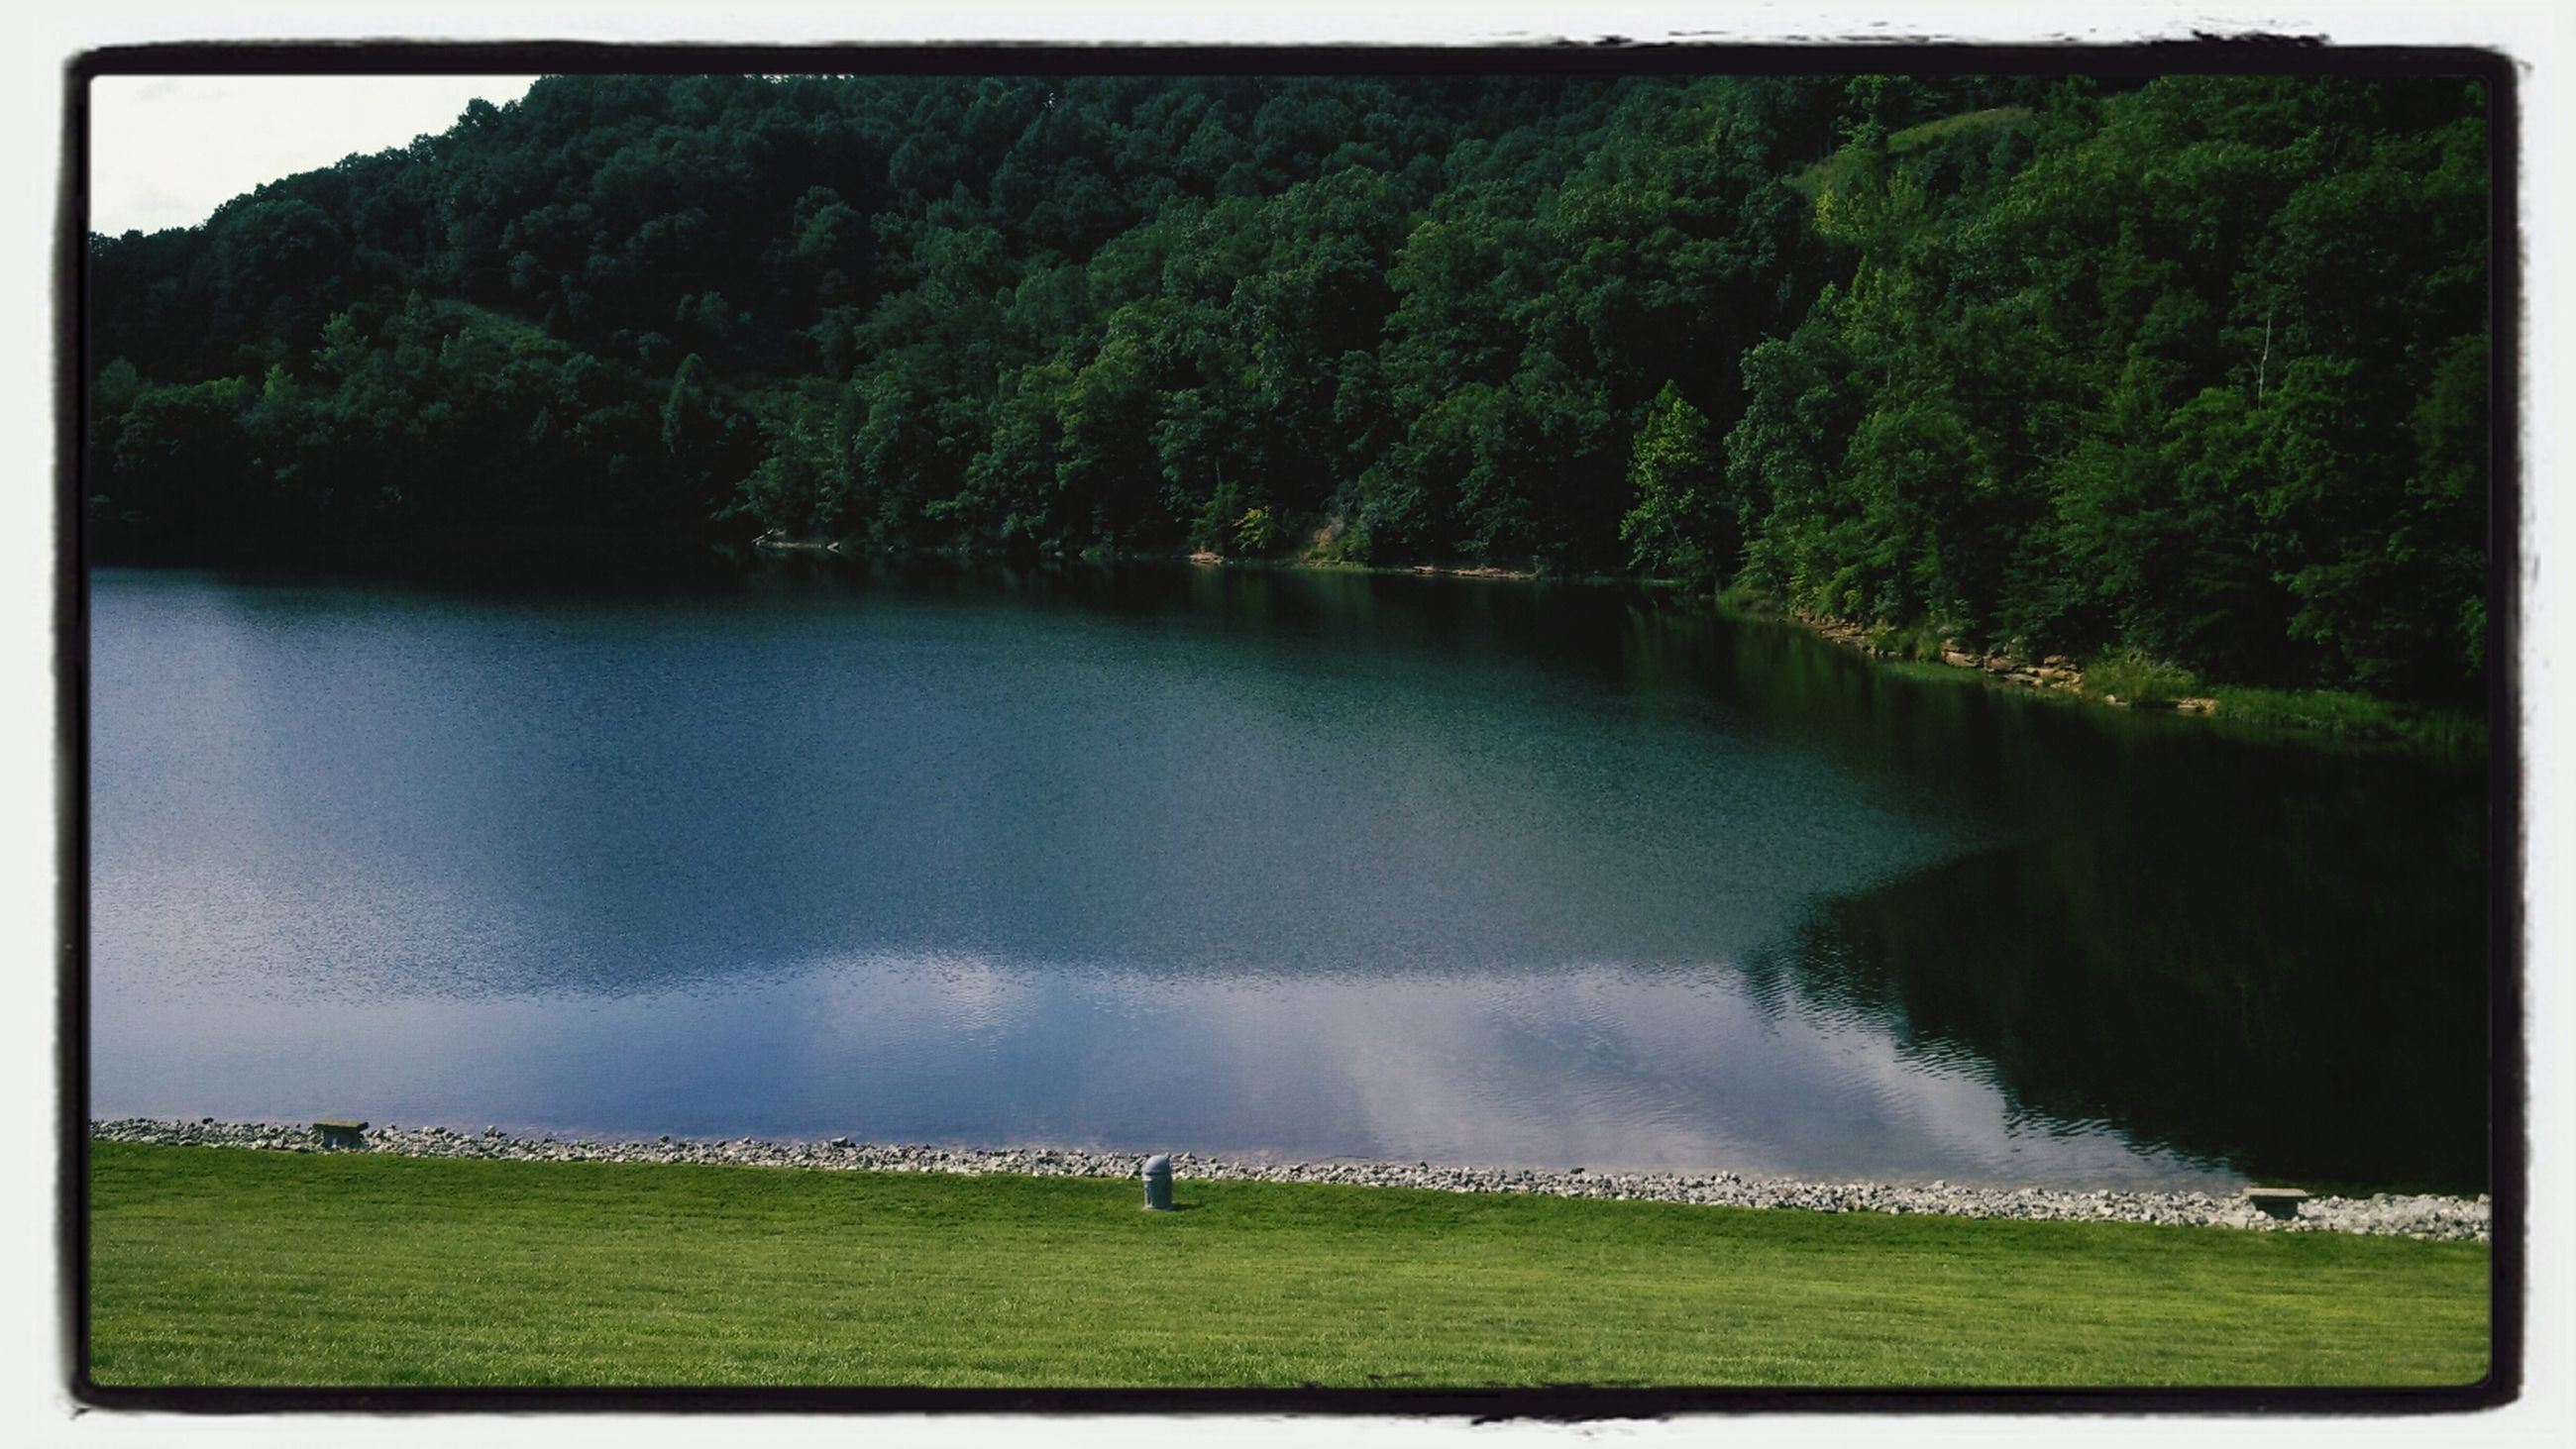 transfer print, water, auto post production filter, tree, tranquil scene, scenics, tranquility, beauty in nature, lake, grass, nature, reflection, green color, river, idyllic, sky, landscape, growth, panoramic, outdoors